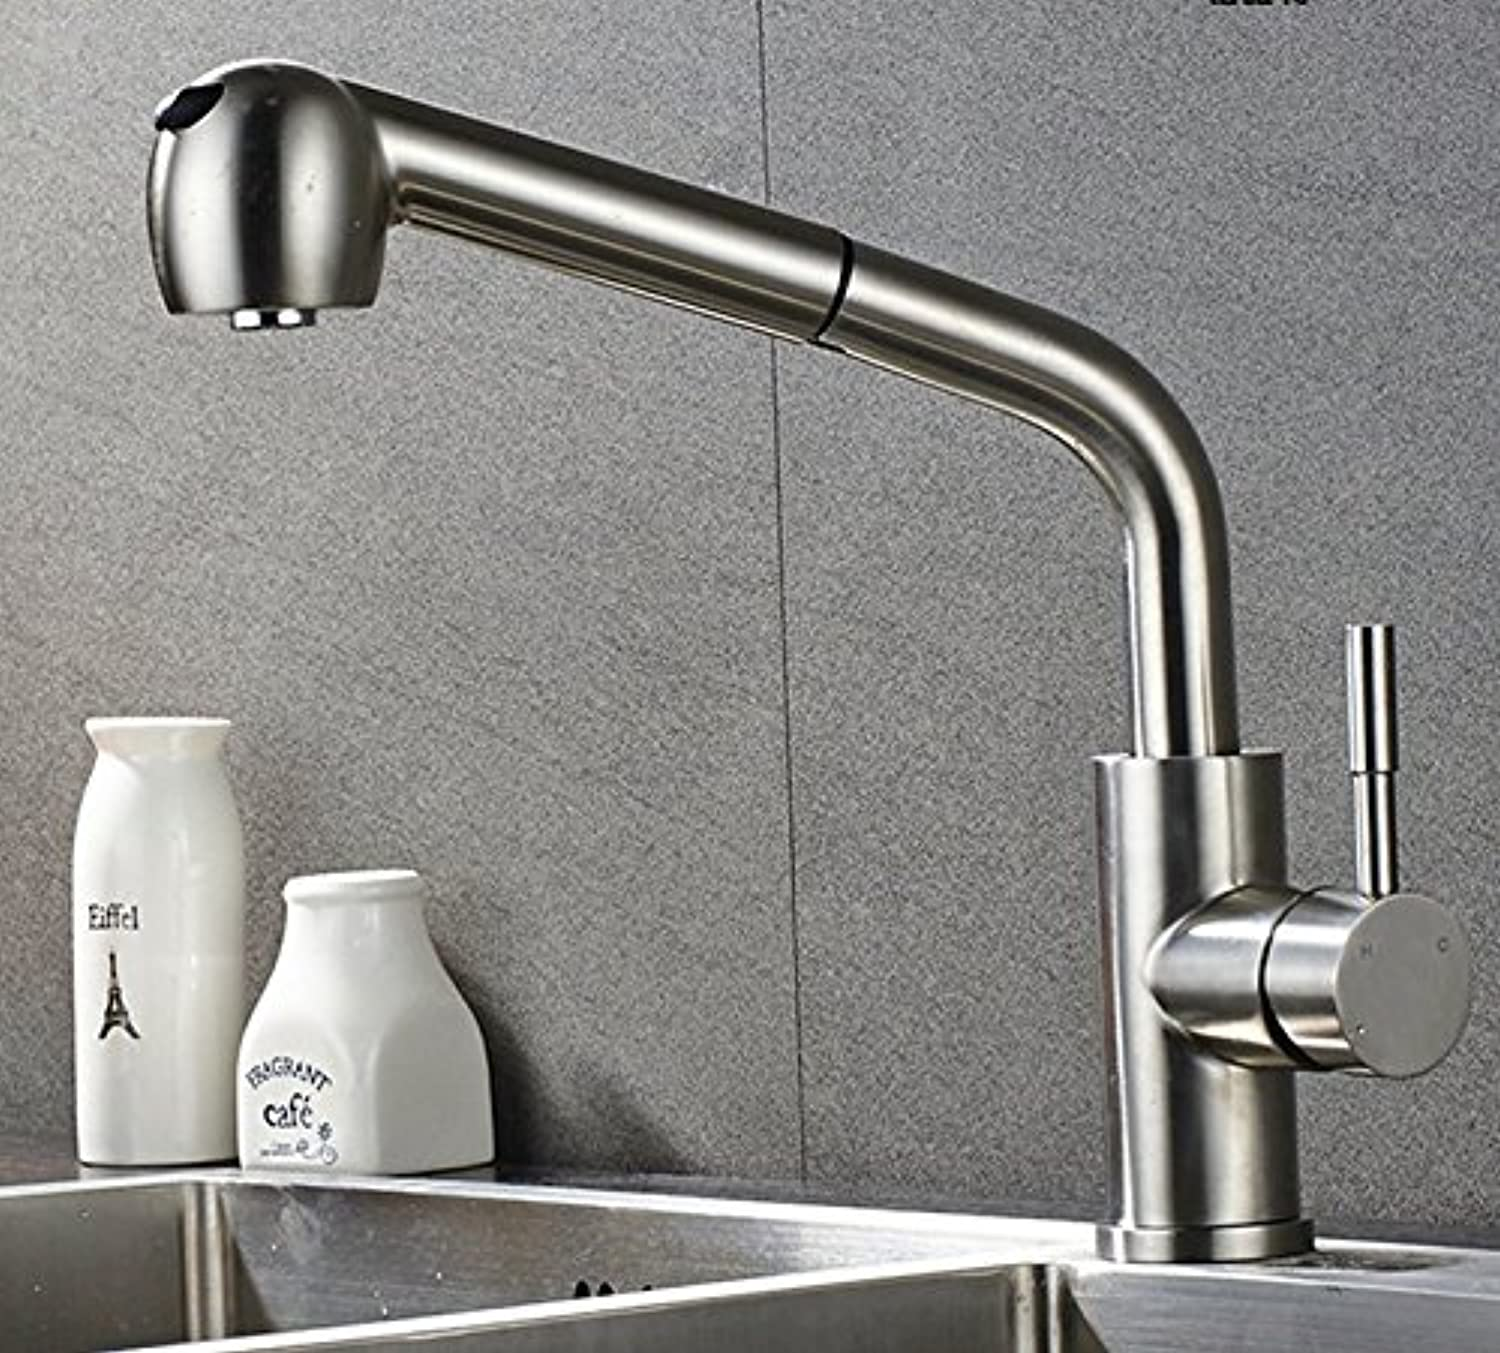 Mangeoo Faucet Stainless Steel Kitchen Faucet, Hot And Cold Pull Basin, Universal redation, Double Outlet, Switch Head.